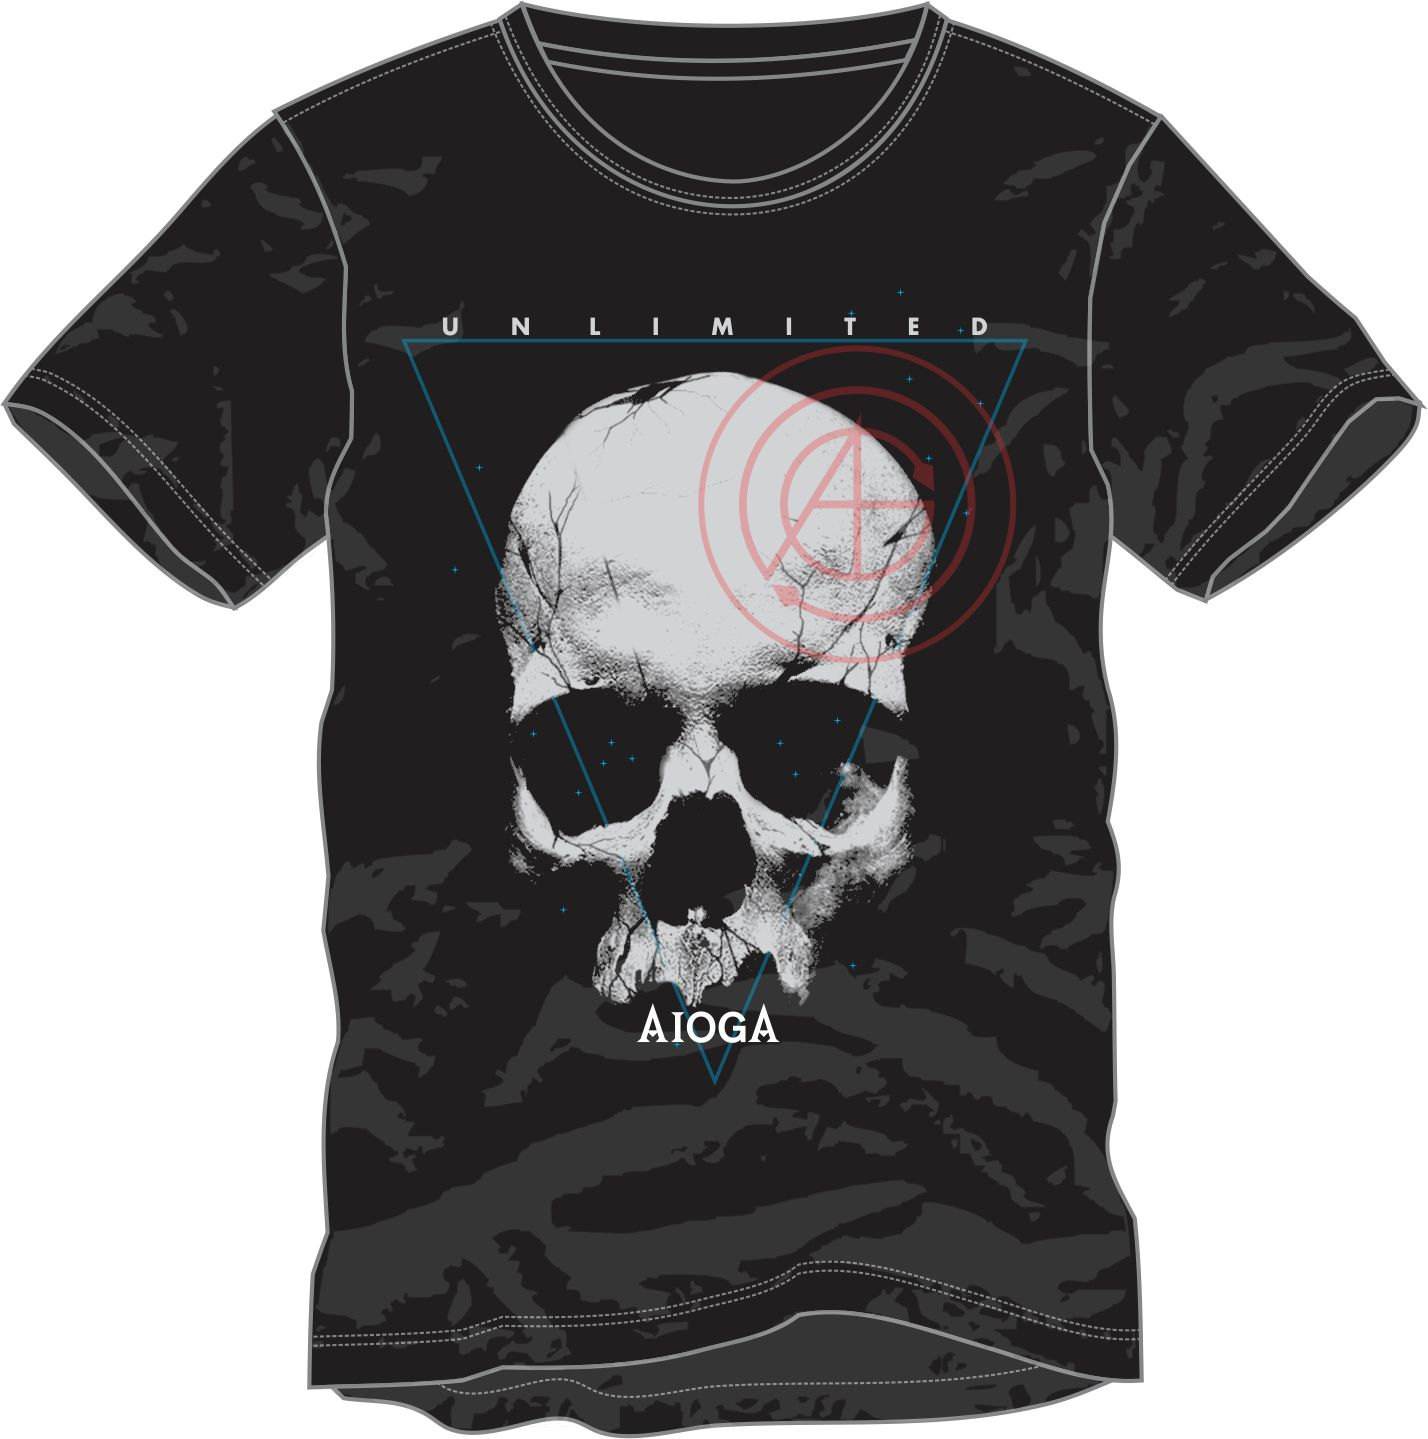 Modern Personable T Shirt Design For Jason King By